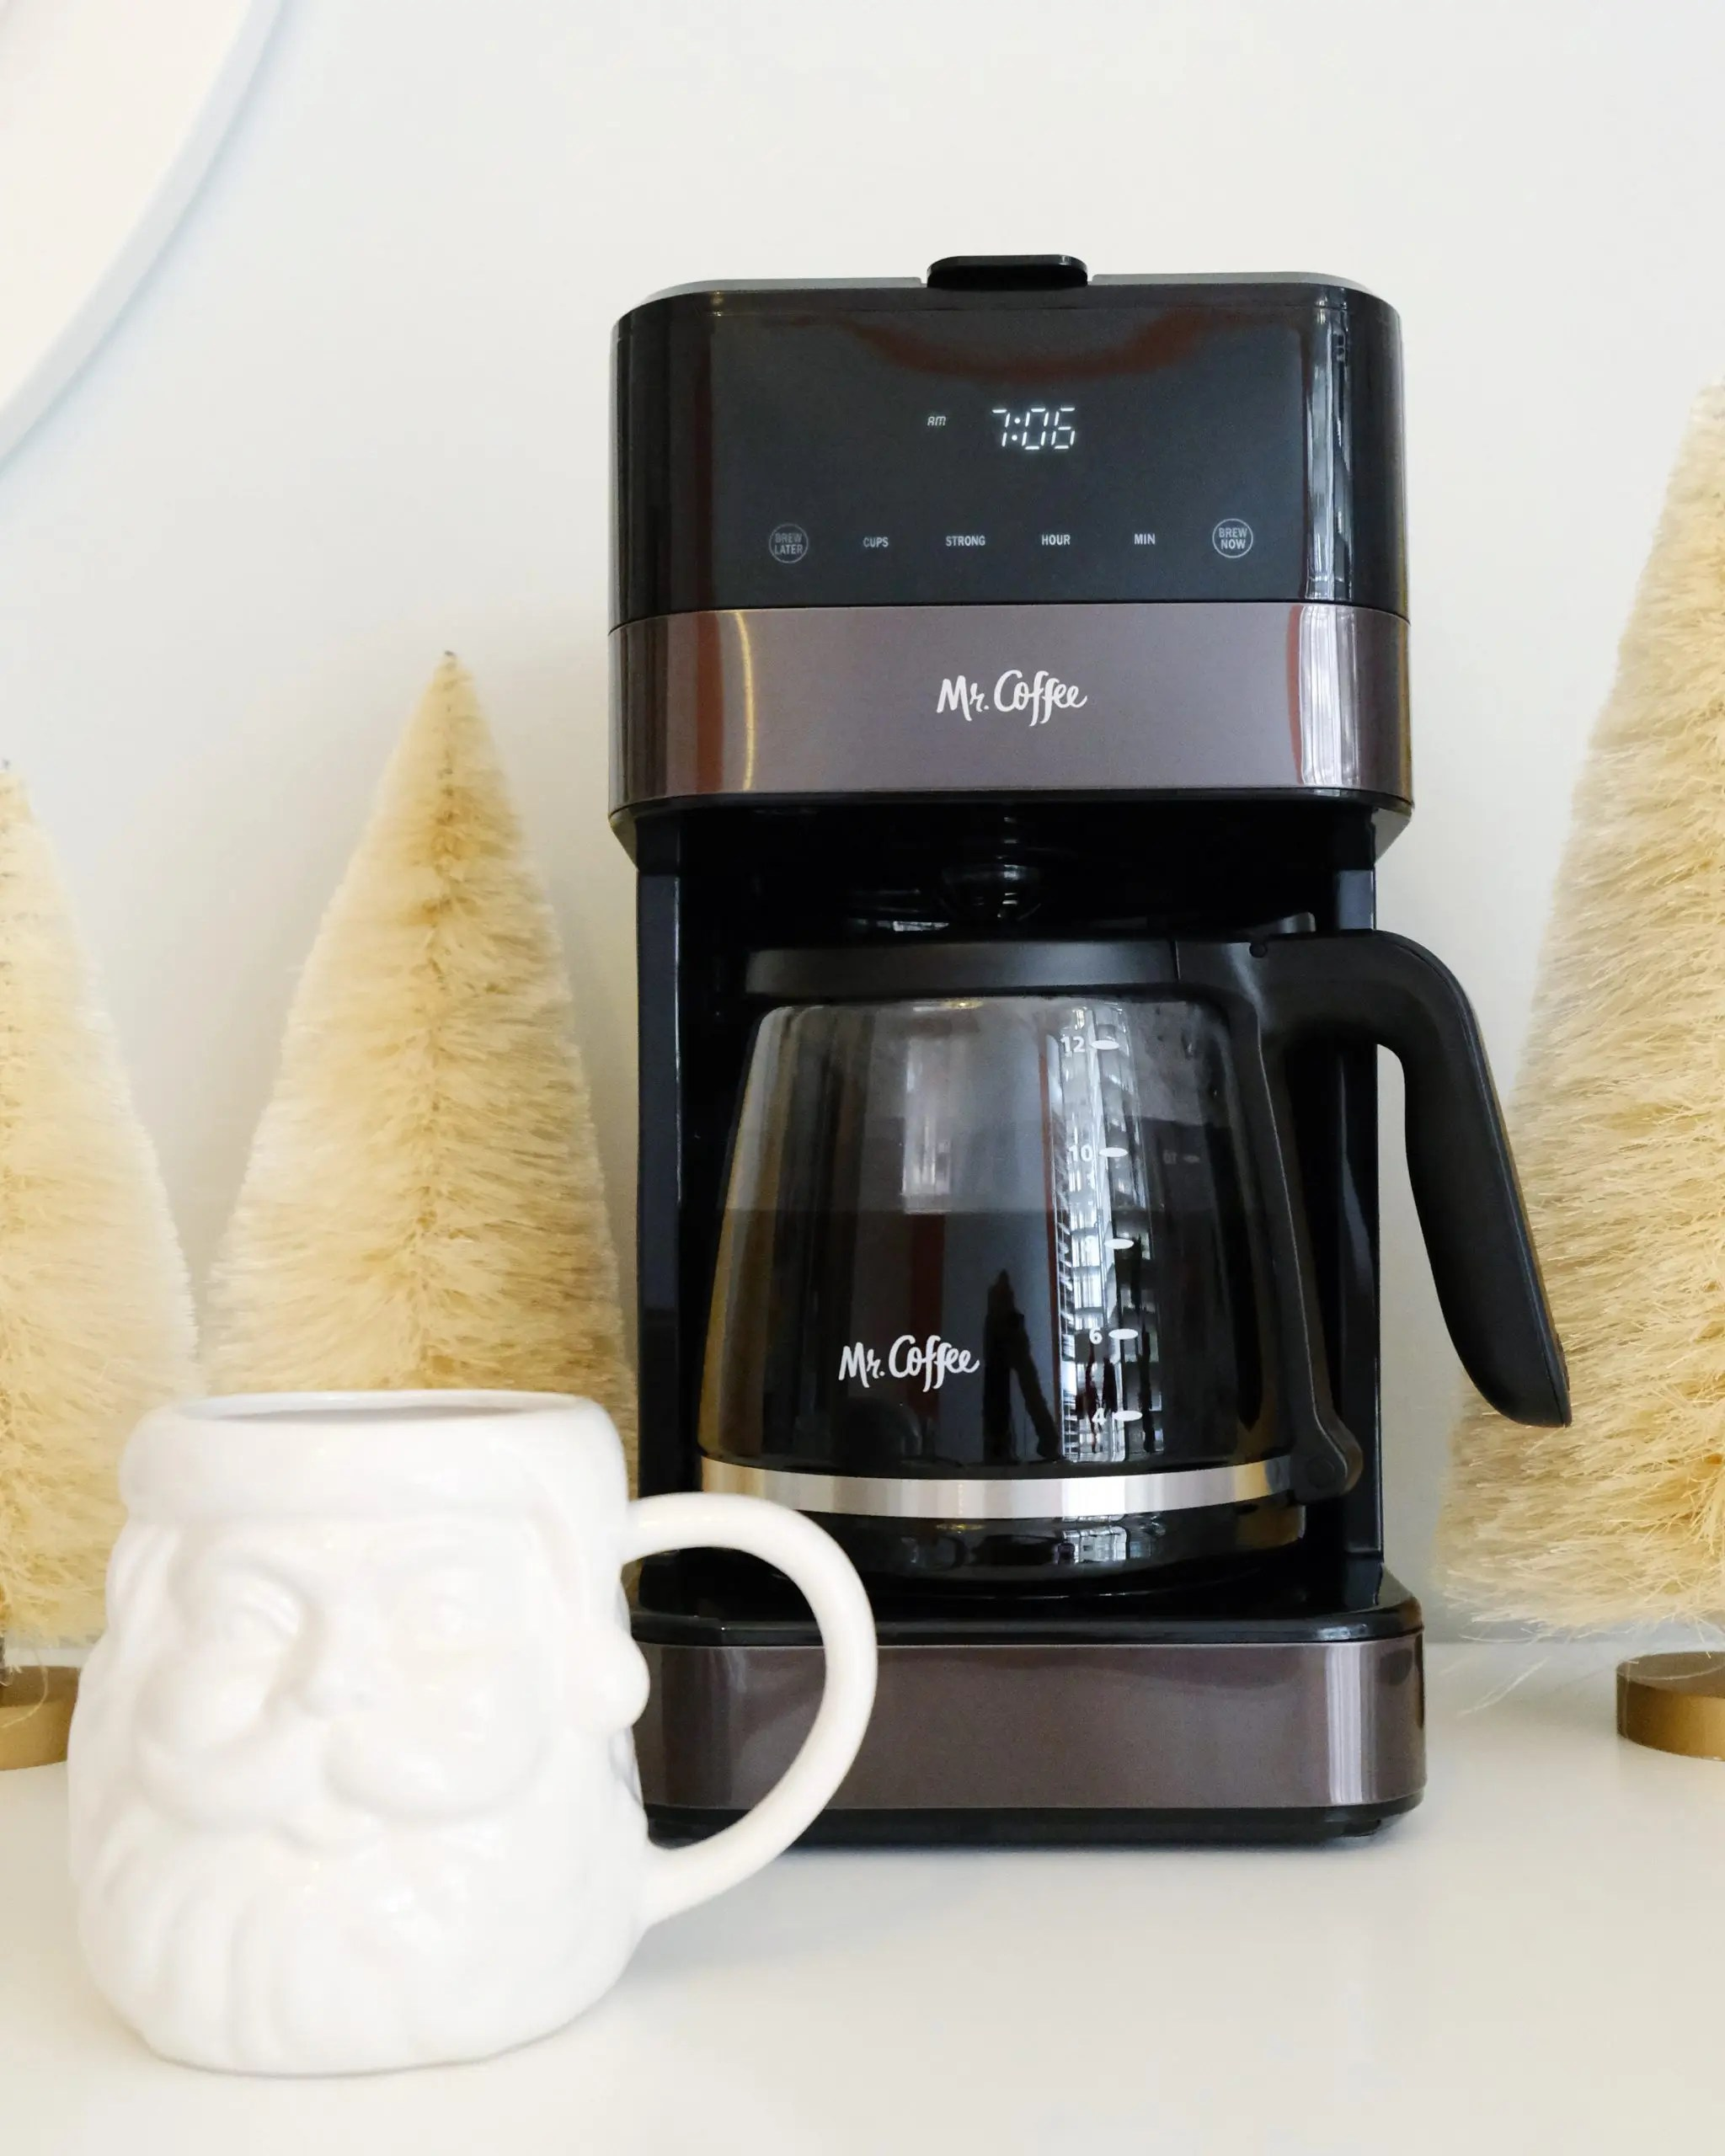 Mr. Coffee Touch Coffeemaker